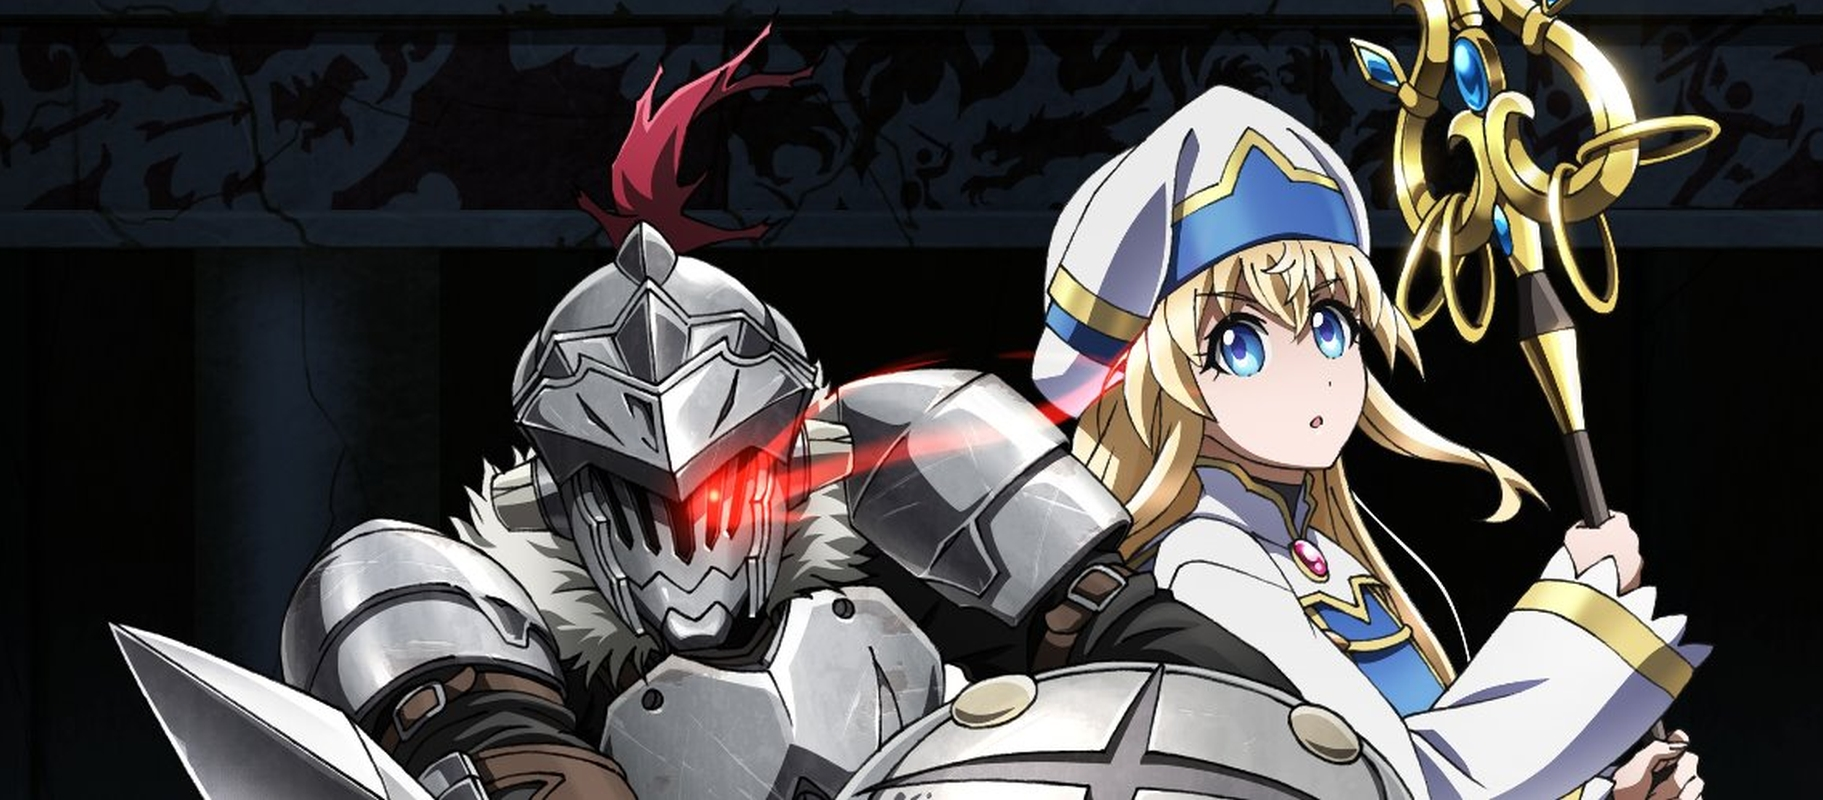 Goblin Slayer: The Endless Revenge Mobile Game Ends Service One Year After Launch